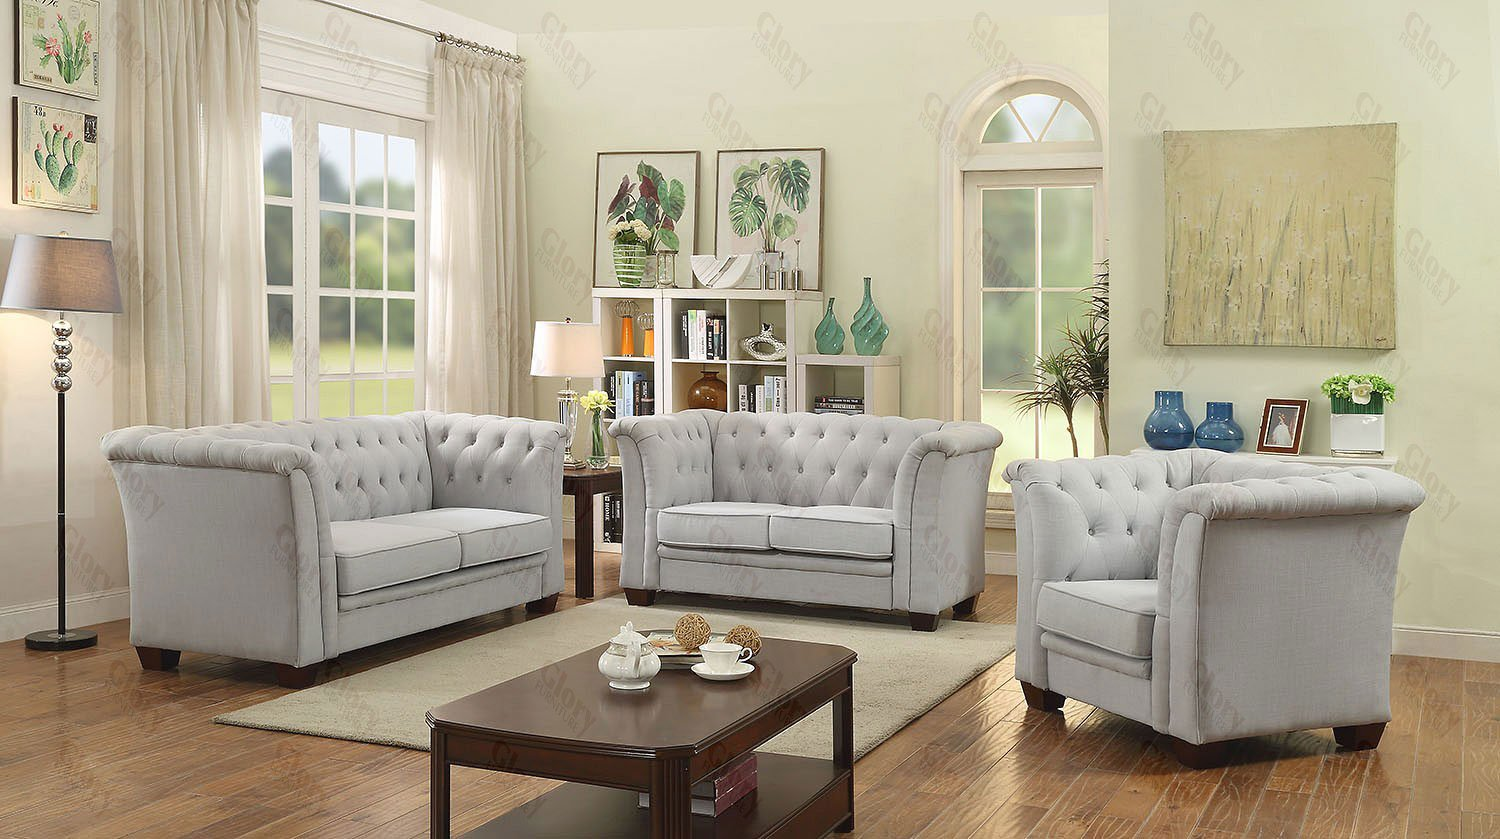 G321 Tufted Living Room Set (Gray Suede) Glory Furniture